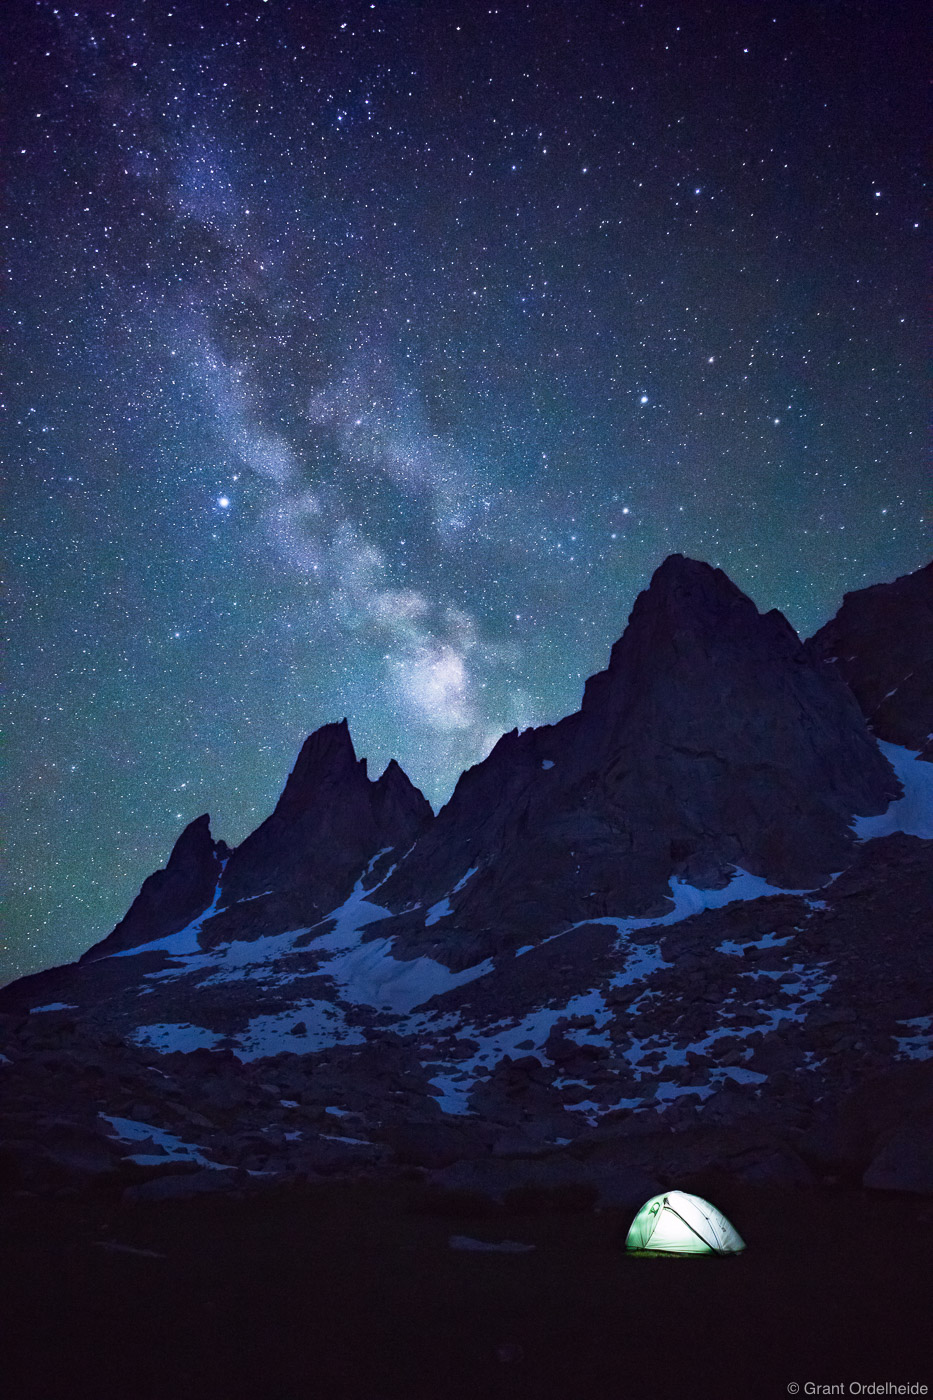 Milky Way over Warbonnet and Warrior peaks in the Cirque of the Towers.